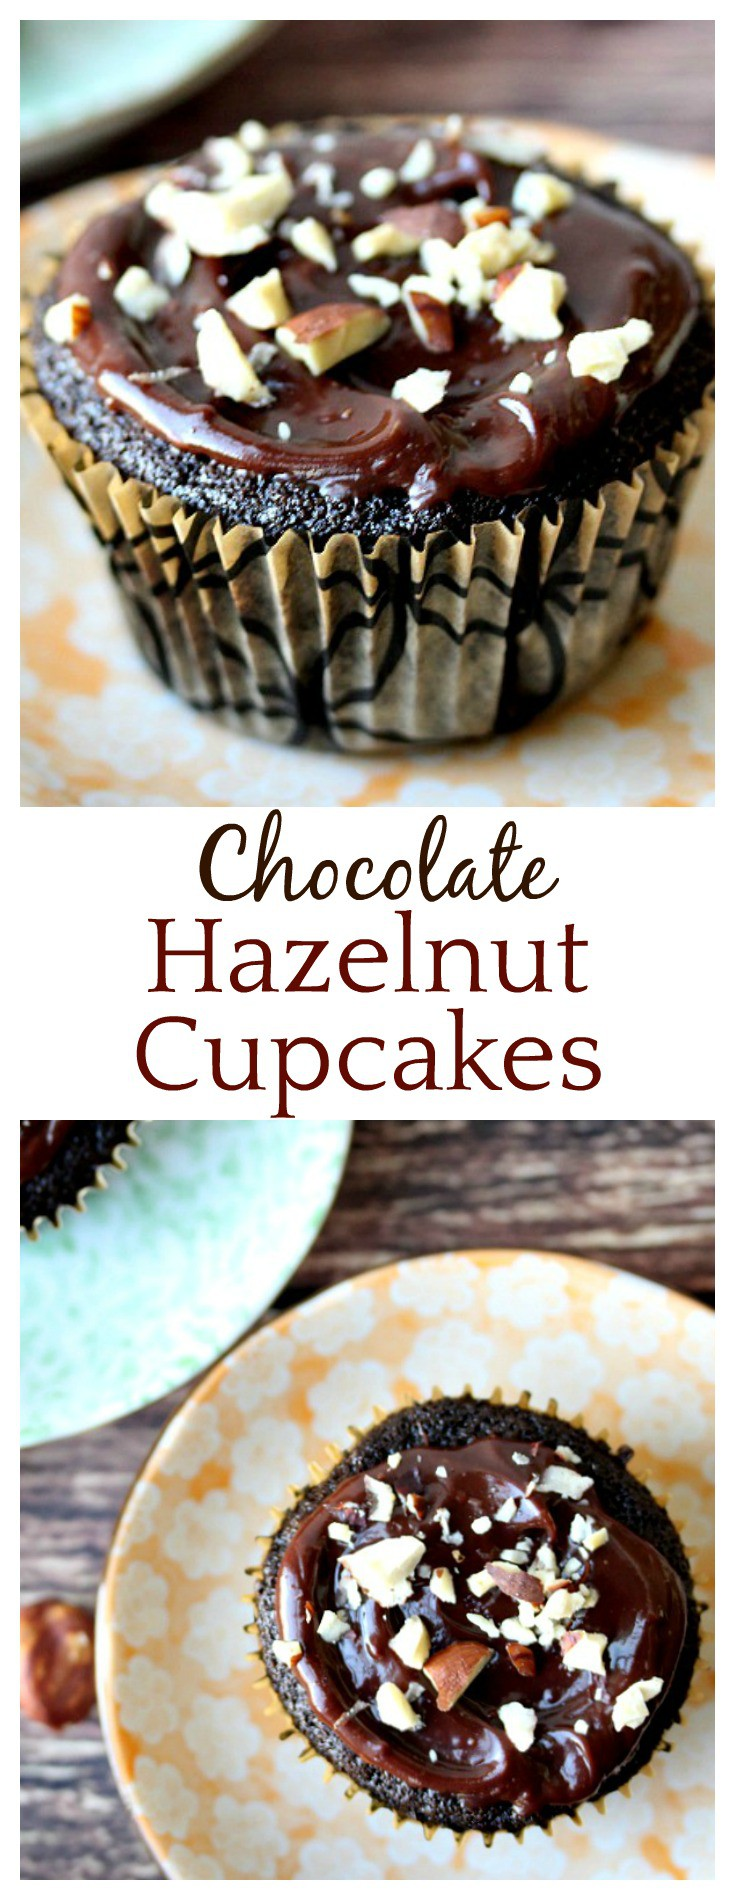 If you love Nutella, you will love this Chocolate Hazelnut Cupcakes Recipe! With hazelnut extract in a classic chocolate cupcake recipe and a chocolate ganache icing topping them off, every bite is simply amazing!